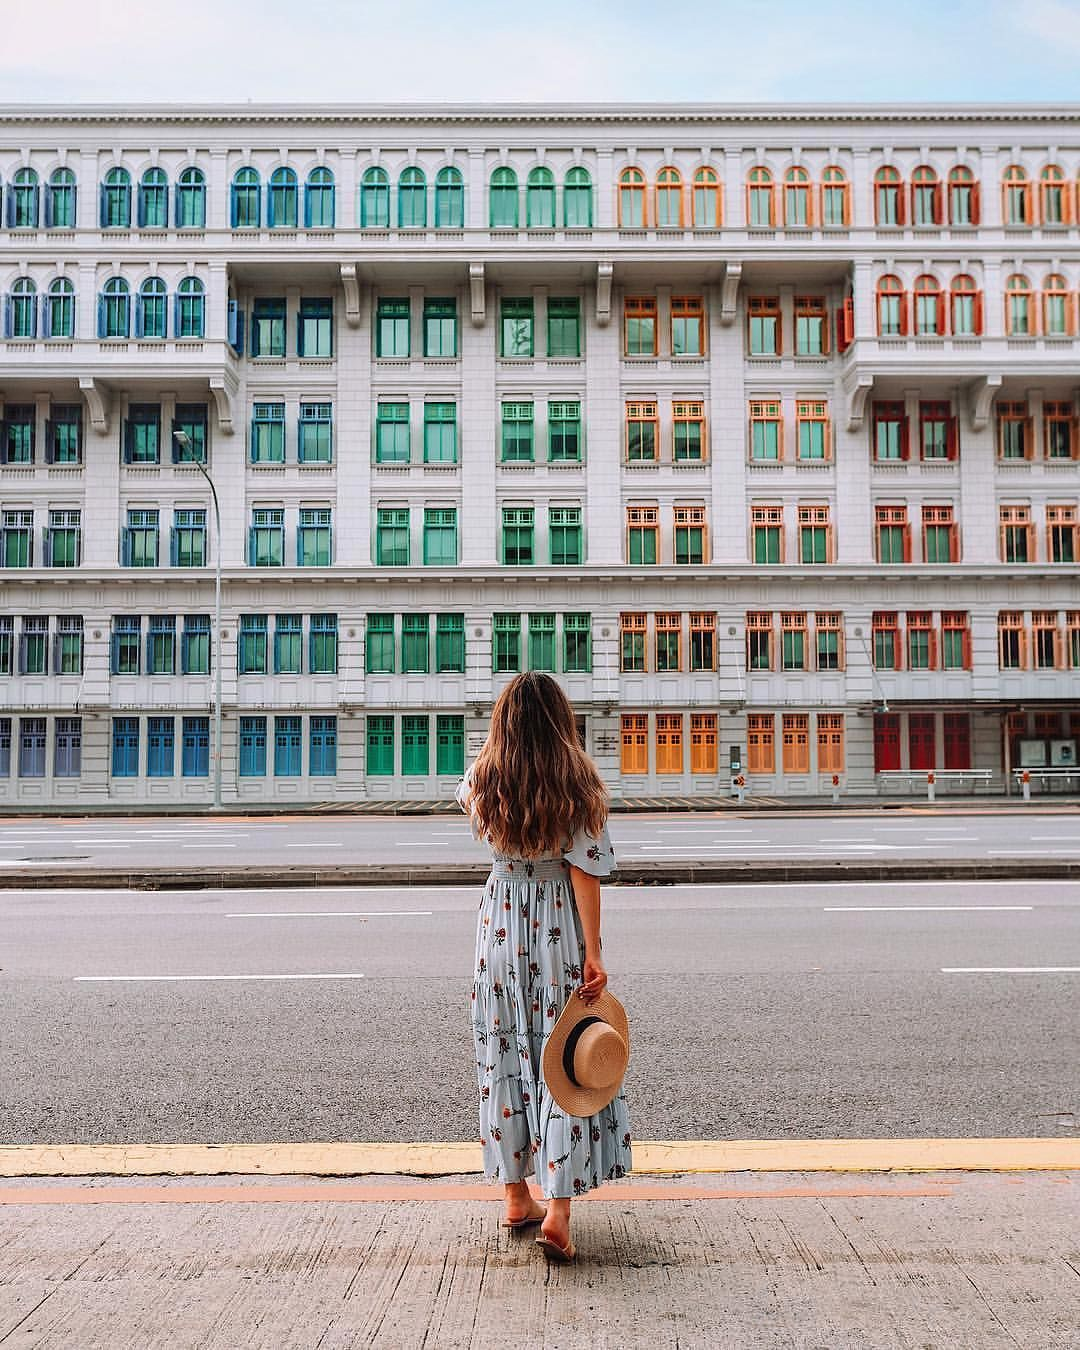 15 Of The Best Instagram Spots In Singapore